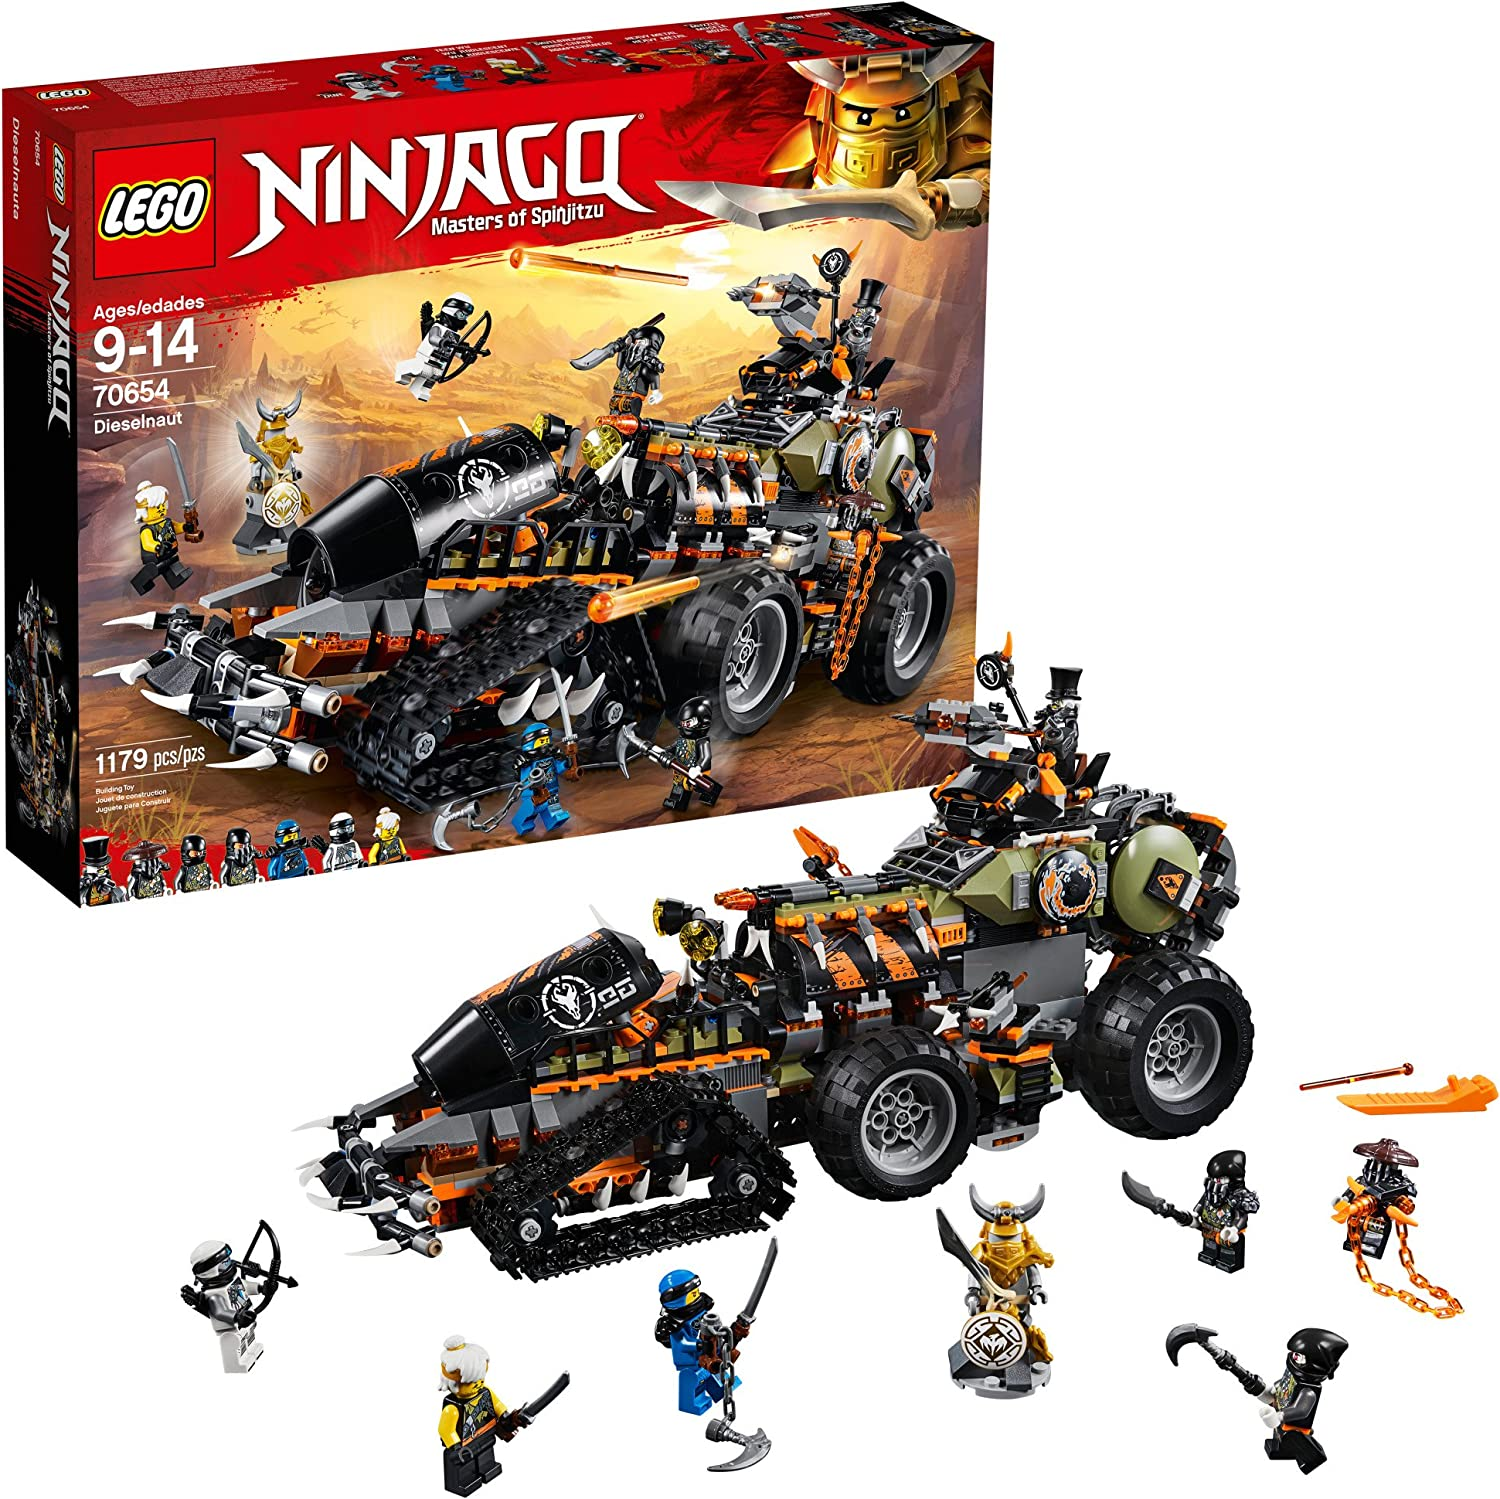 LEGO NINJAGO Masters of Spinjitzu: Dieselnaut 70654 Ninja Warrior Toy and Playset, Fun Building Kit with Brick Battle Tank Vehicle (1179 Pieces)